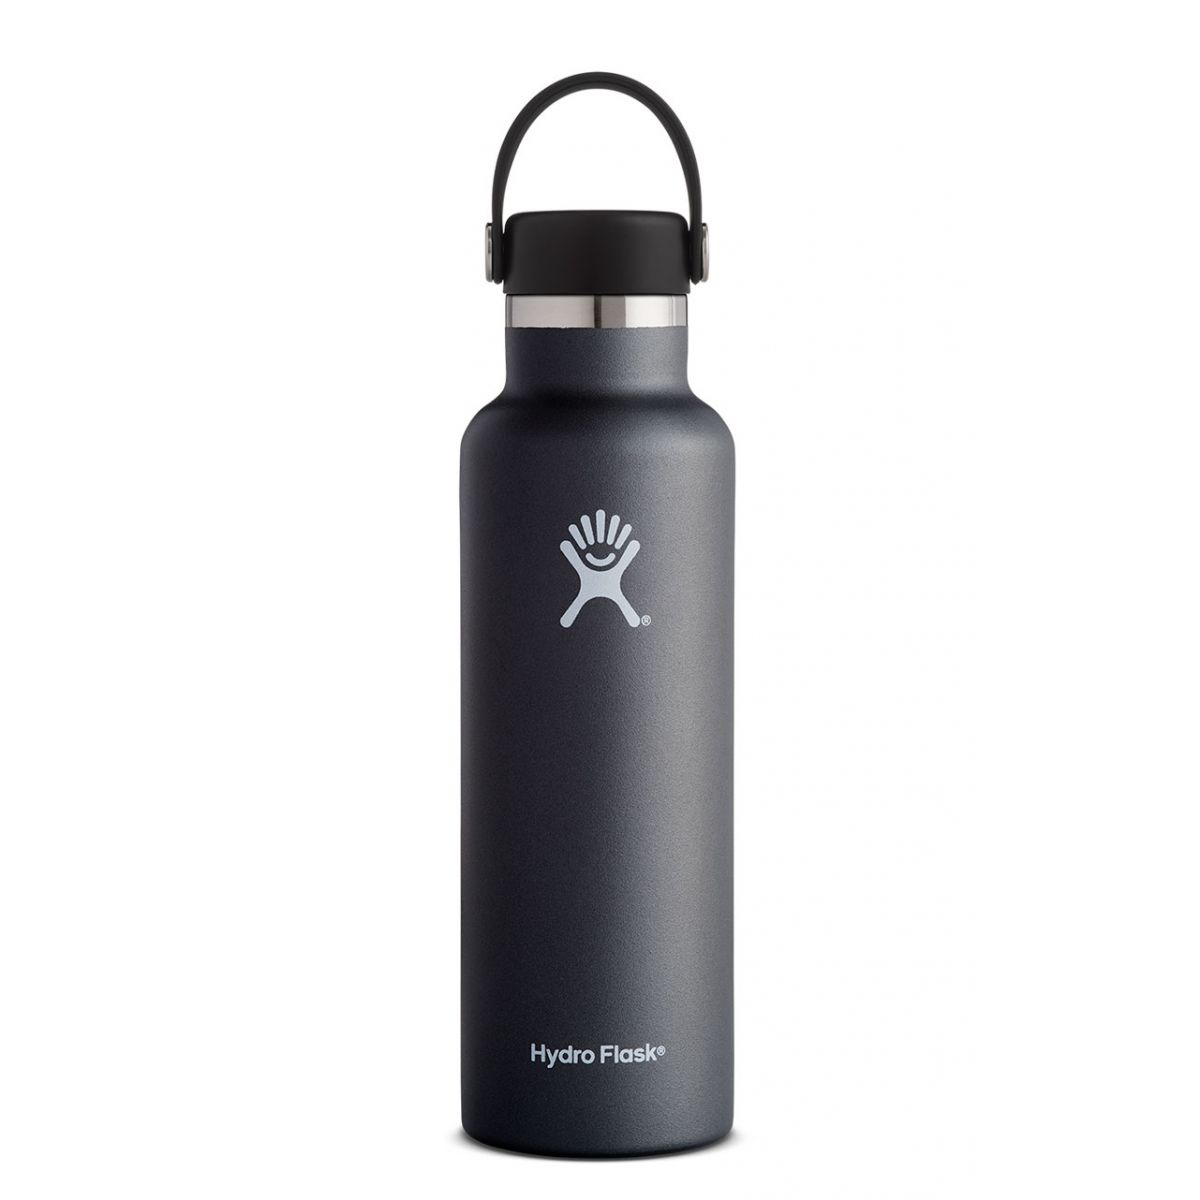 'Hydro Flask' 21 oz. Standard Mouth - Black